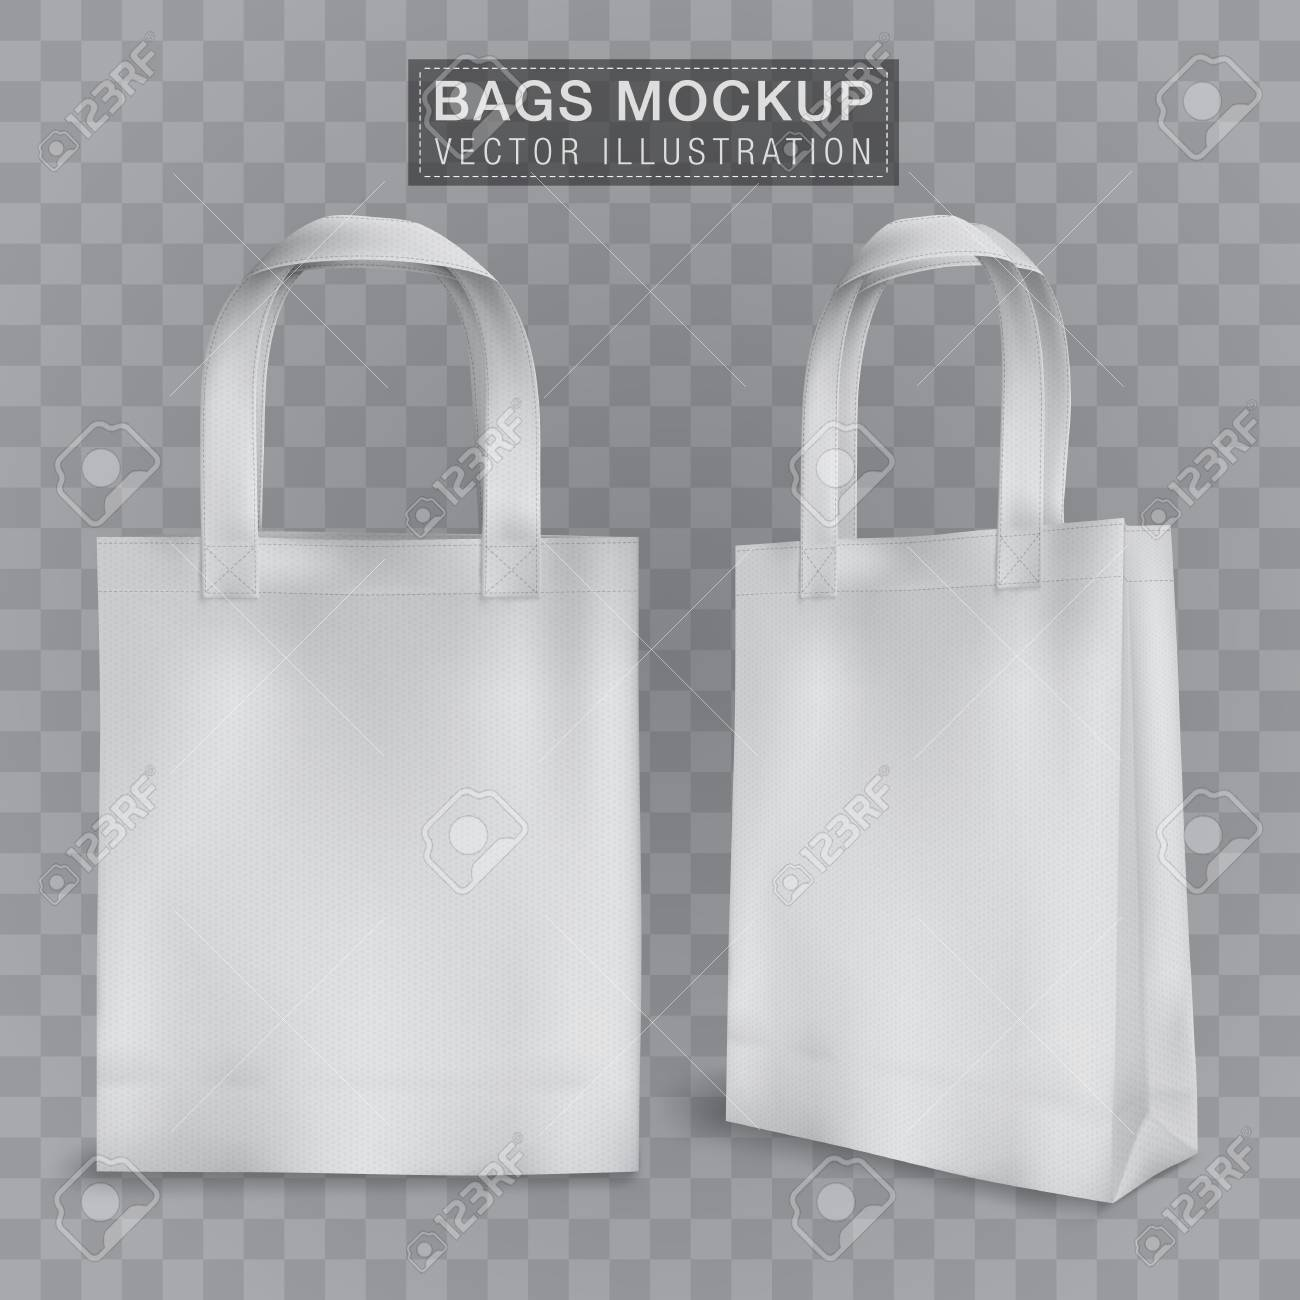 realistic tote shopping bag mock up template for corporate identity